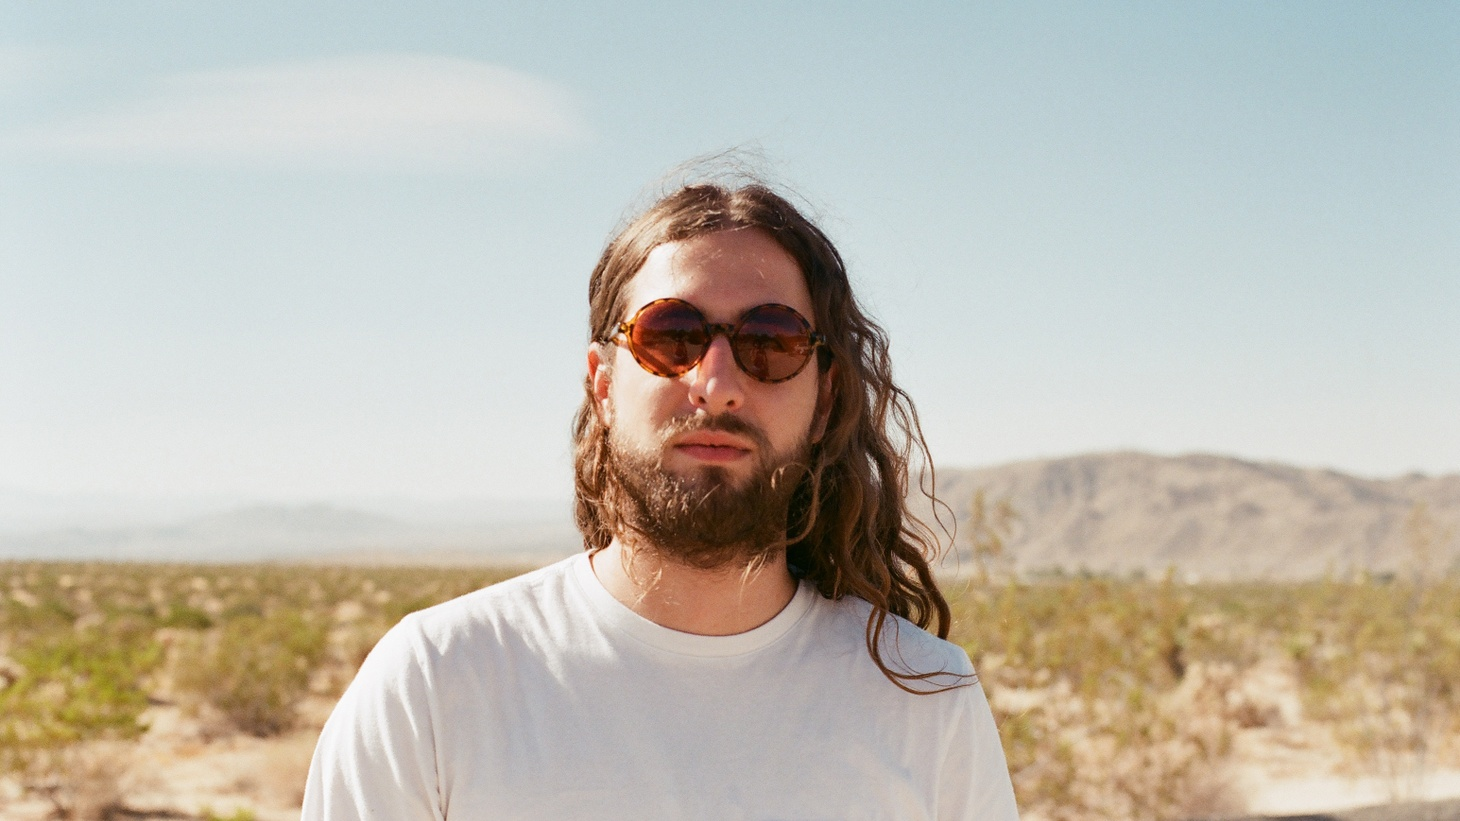 """Multi-instrumentalist Nate Mercereau created an album's worth of songs around finding joy! Explore the experimental sounds found in """"This Simulation Is A Good One."""""""